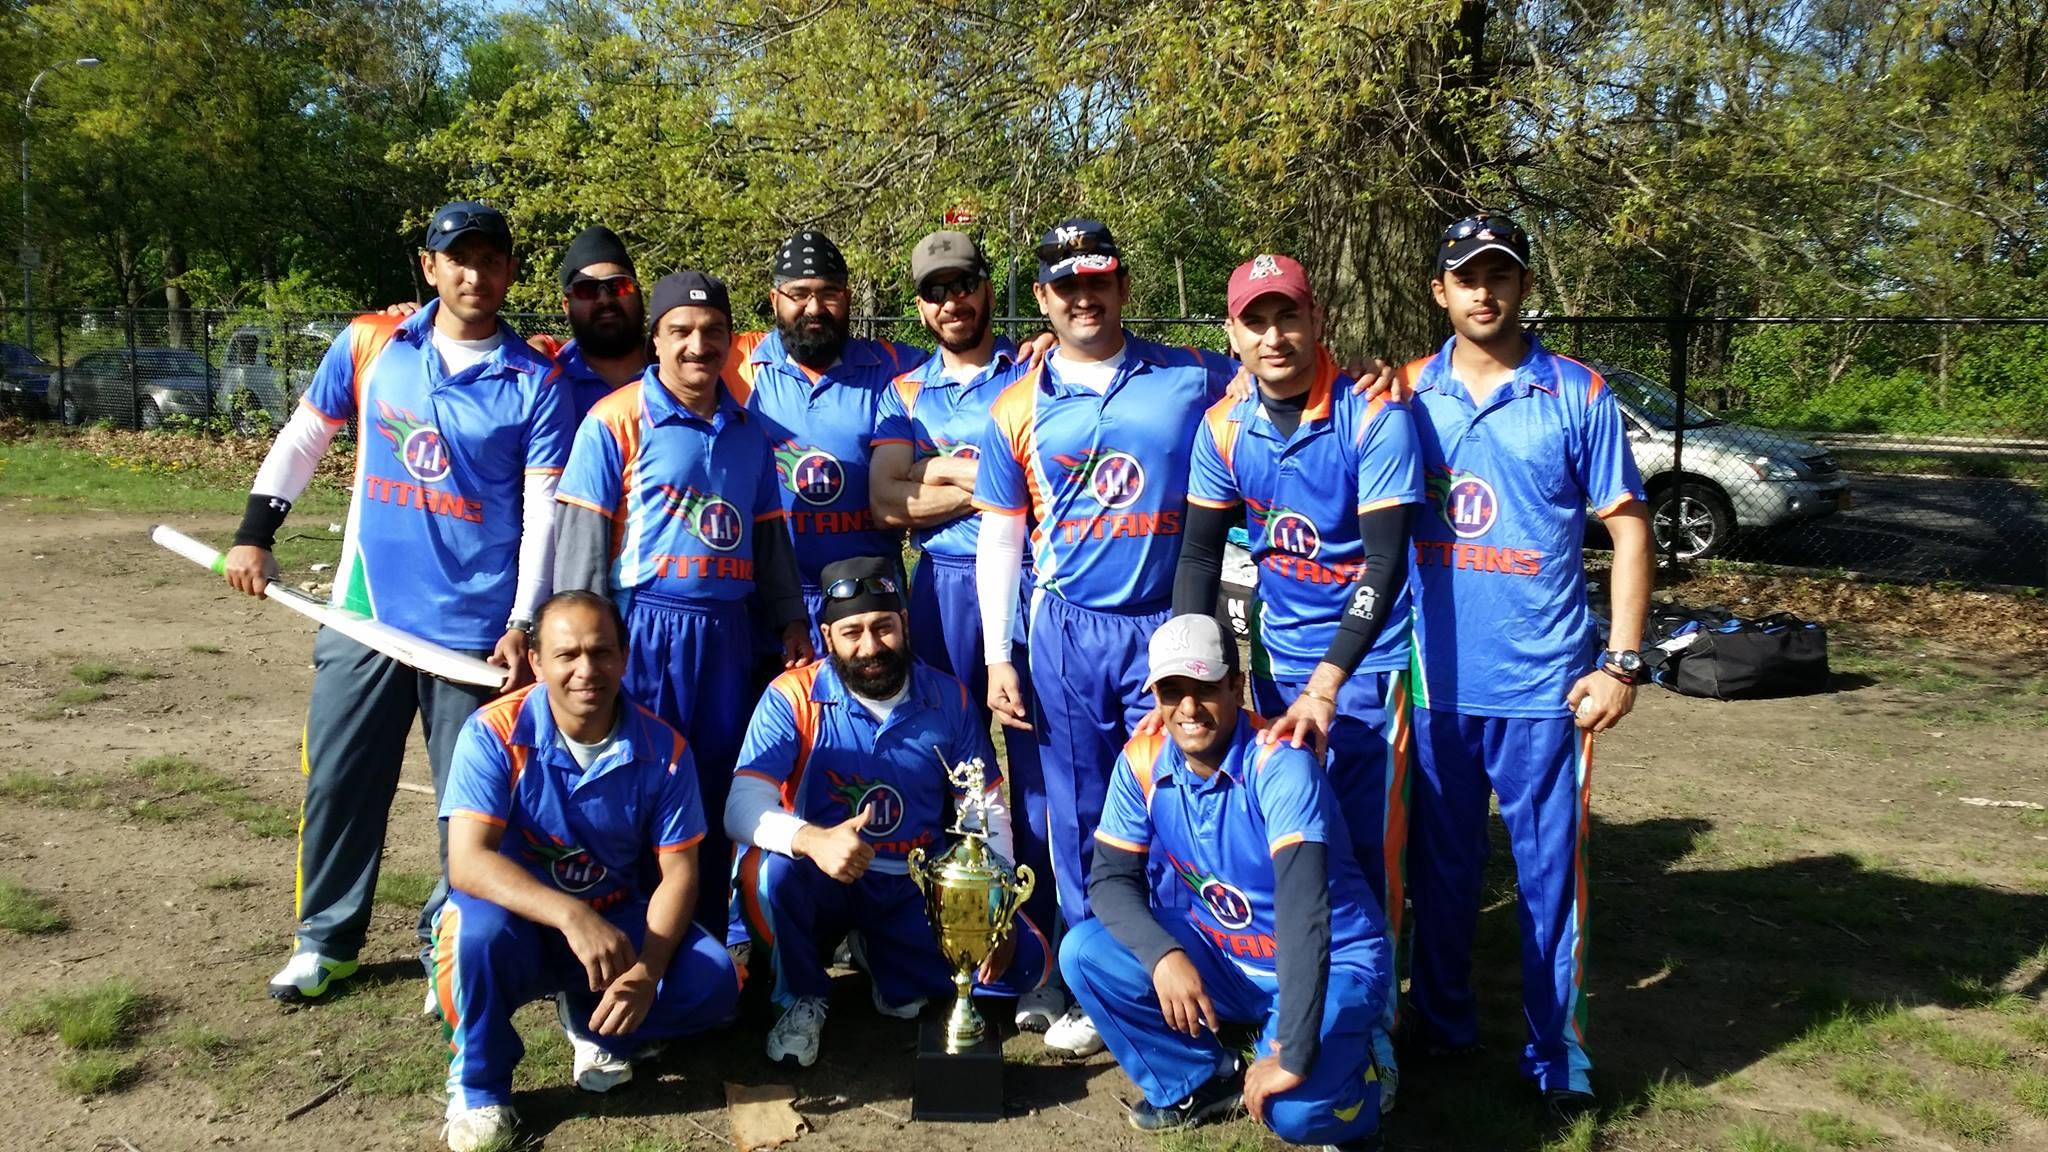 Ajith Bhaskar Shetty (standing, third from right) poses with his cricket teammates.